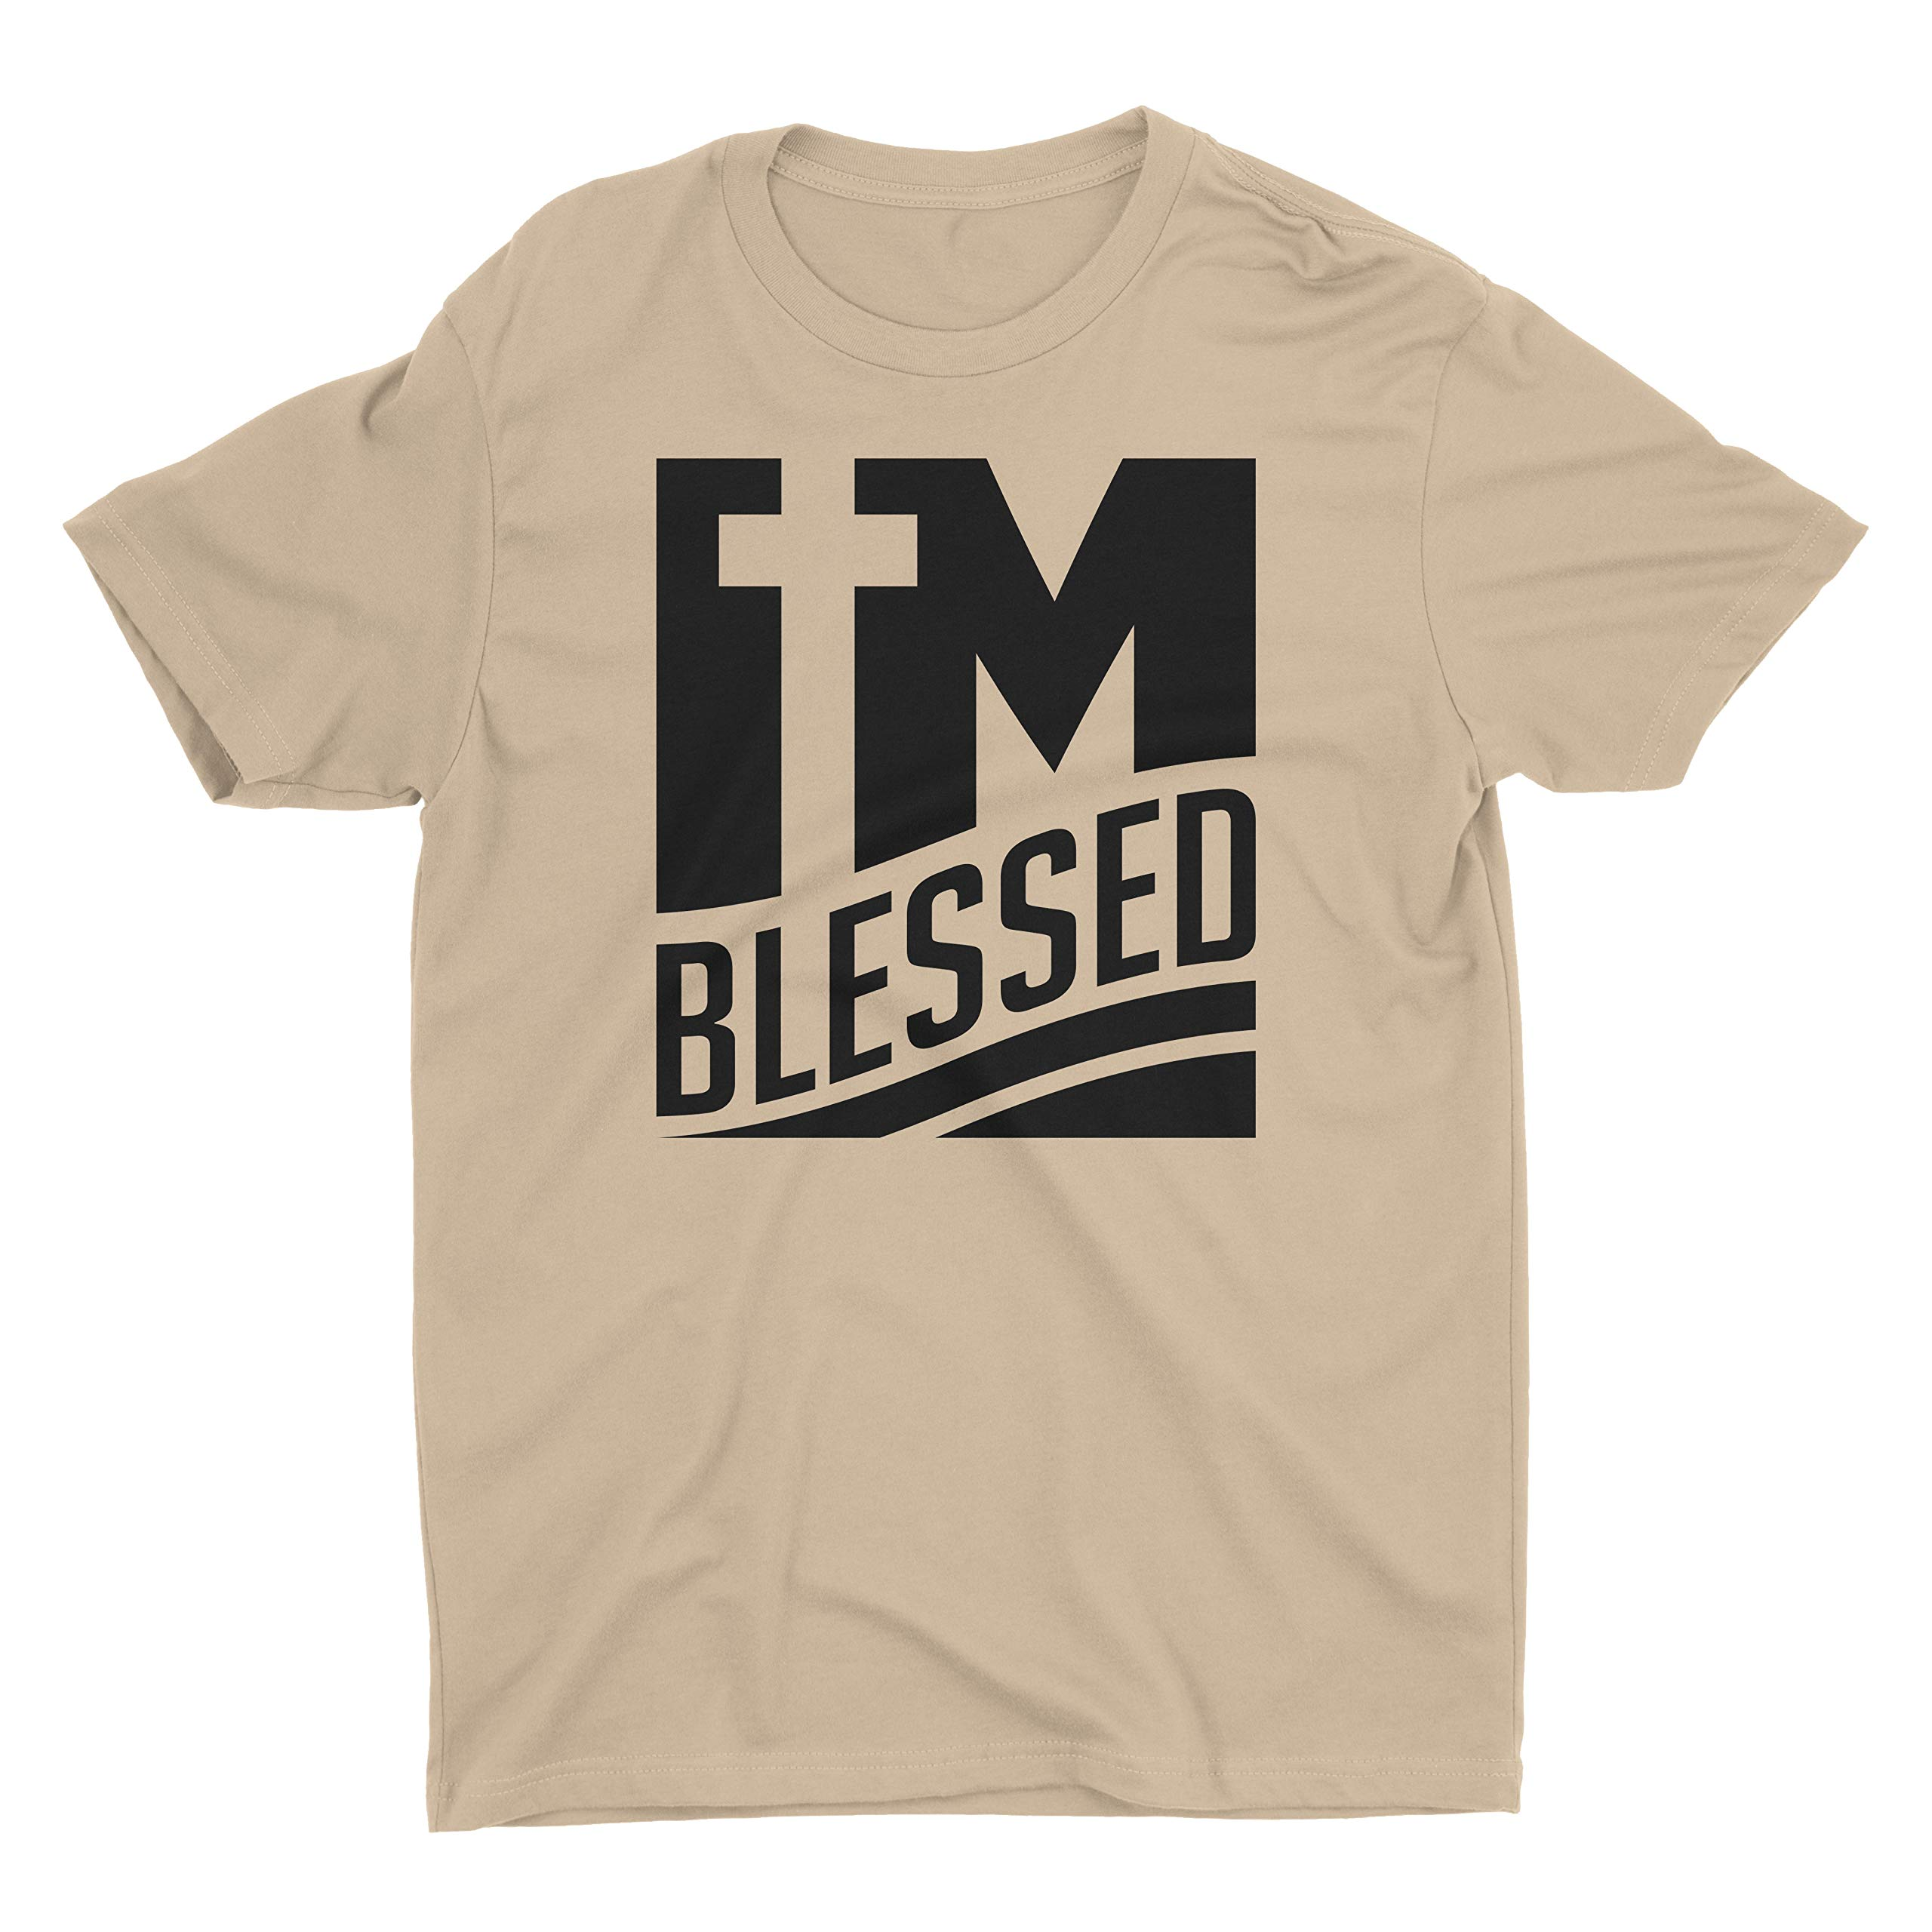 Aprojes I'm Blessed T Shirt – Bible Christian Clothing Fashion